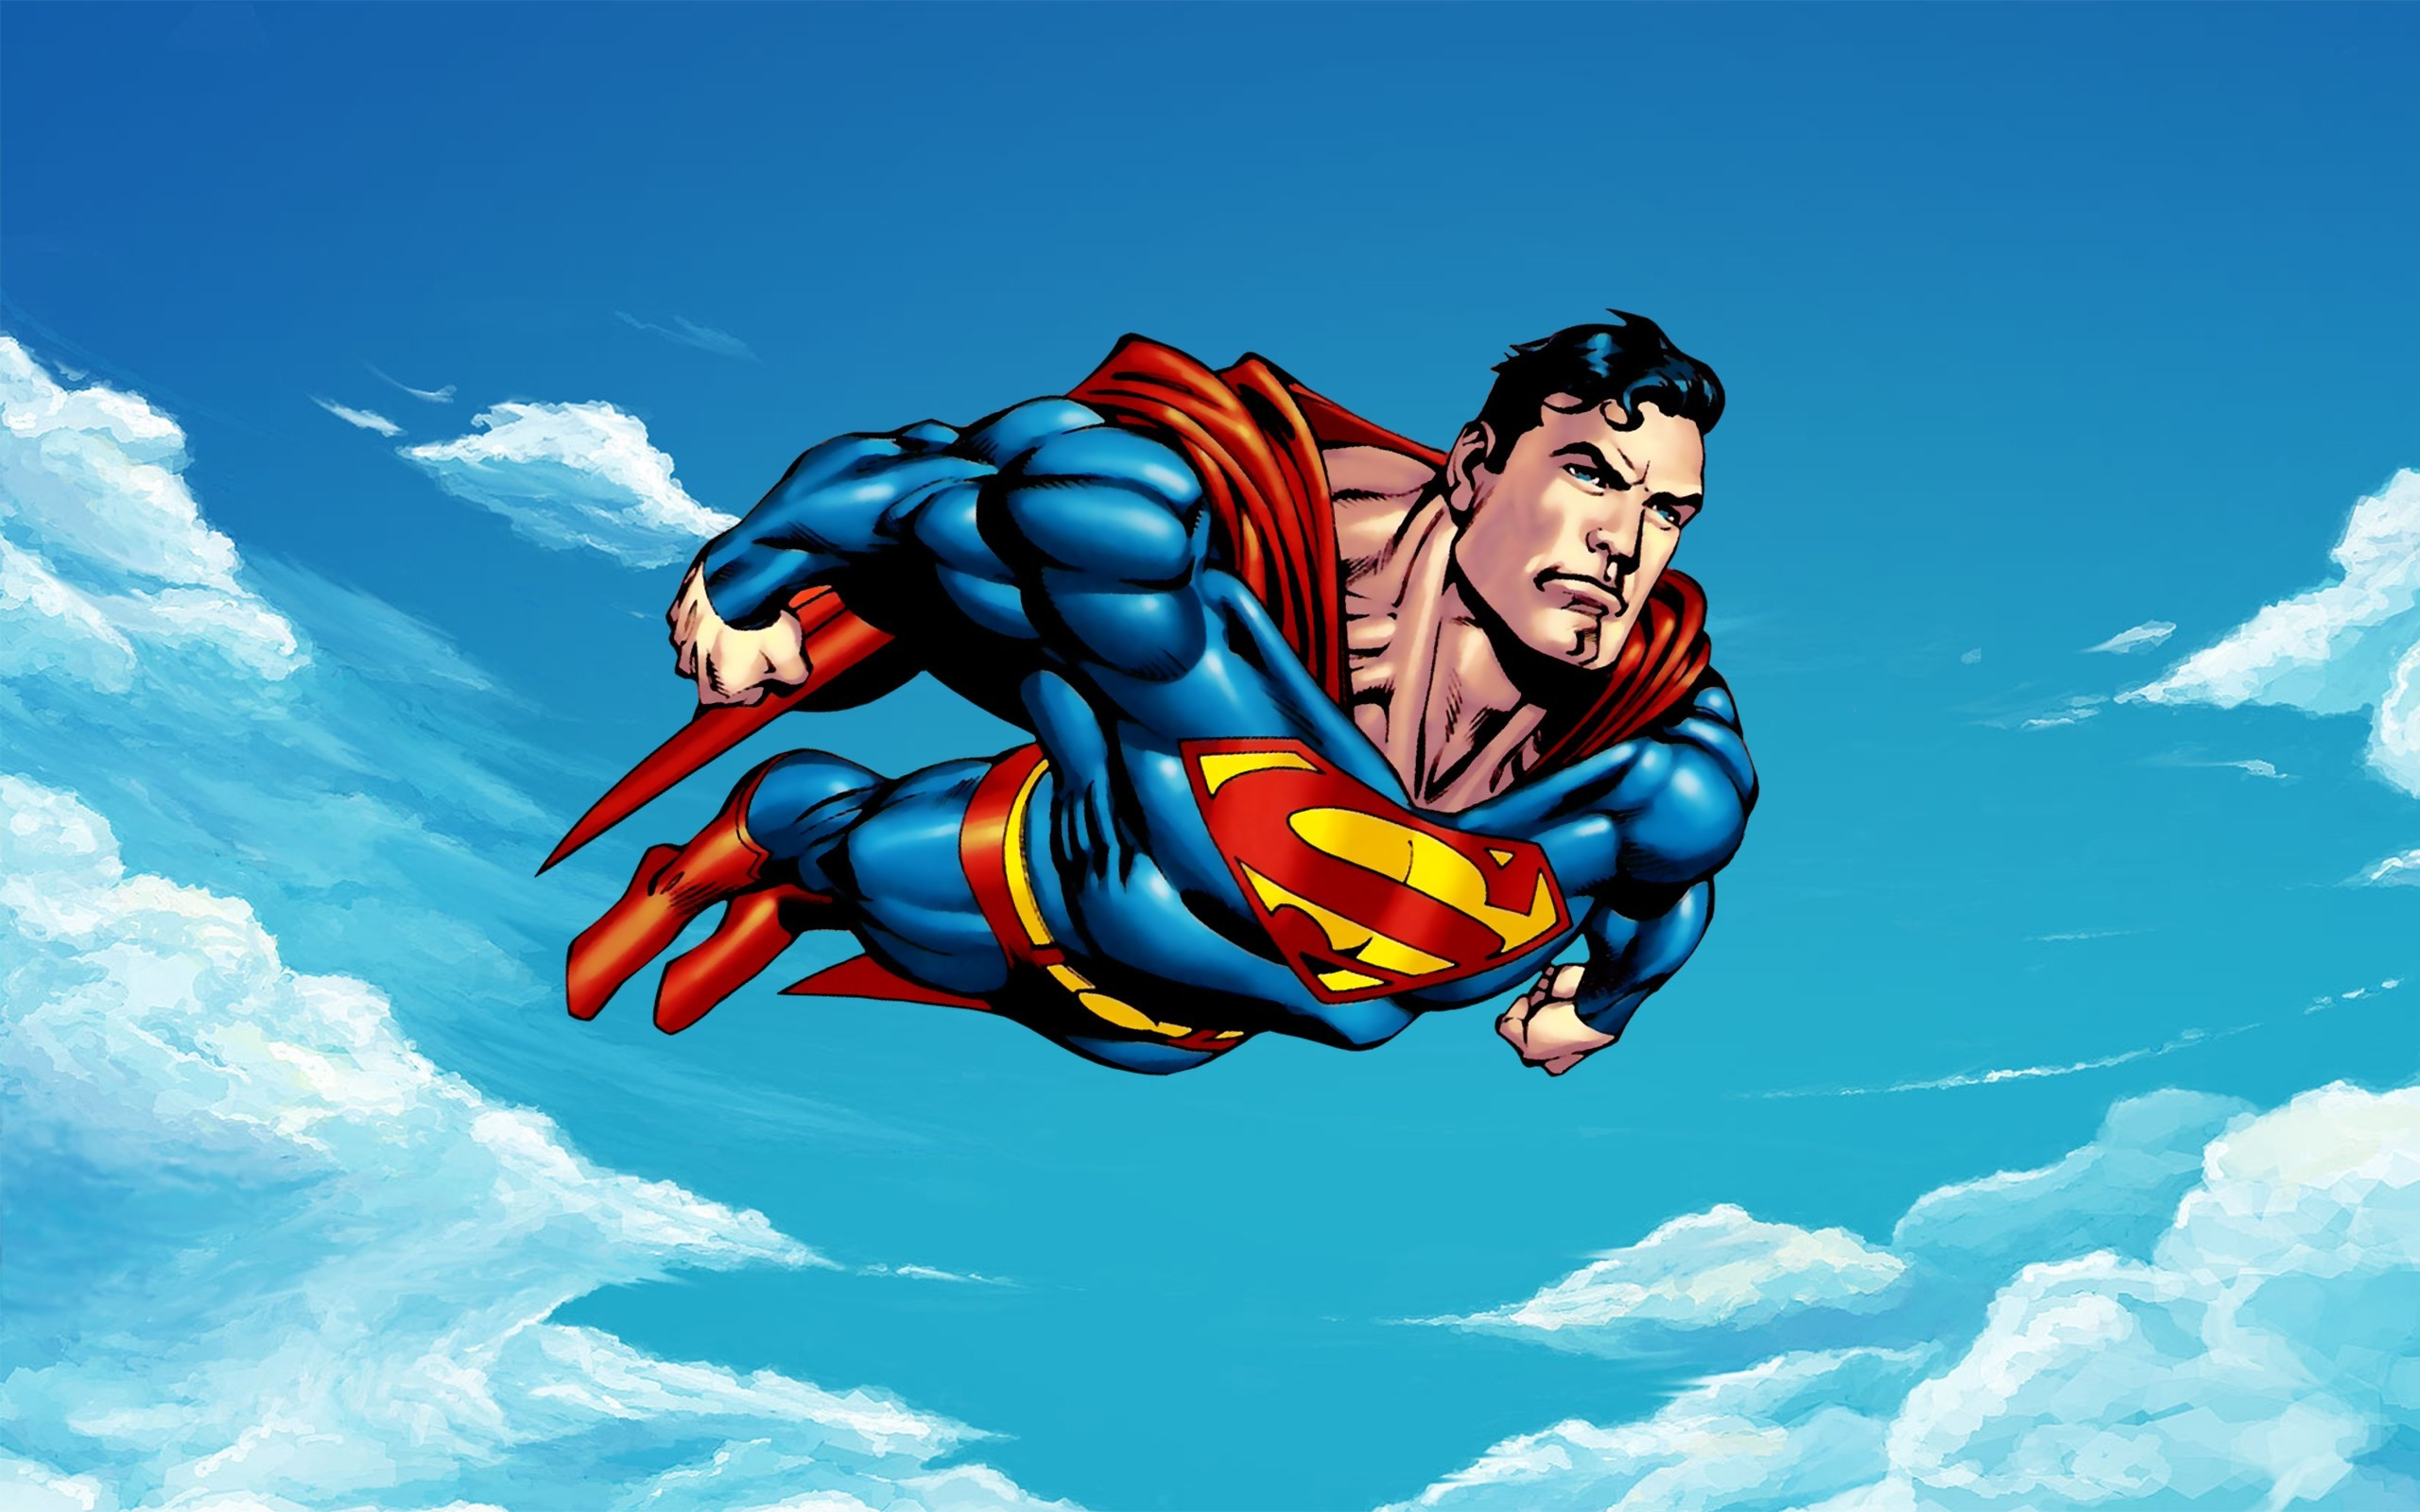 2560x1600 px superman wallpapers for mac desktop by Bailey Murphy